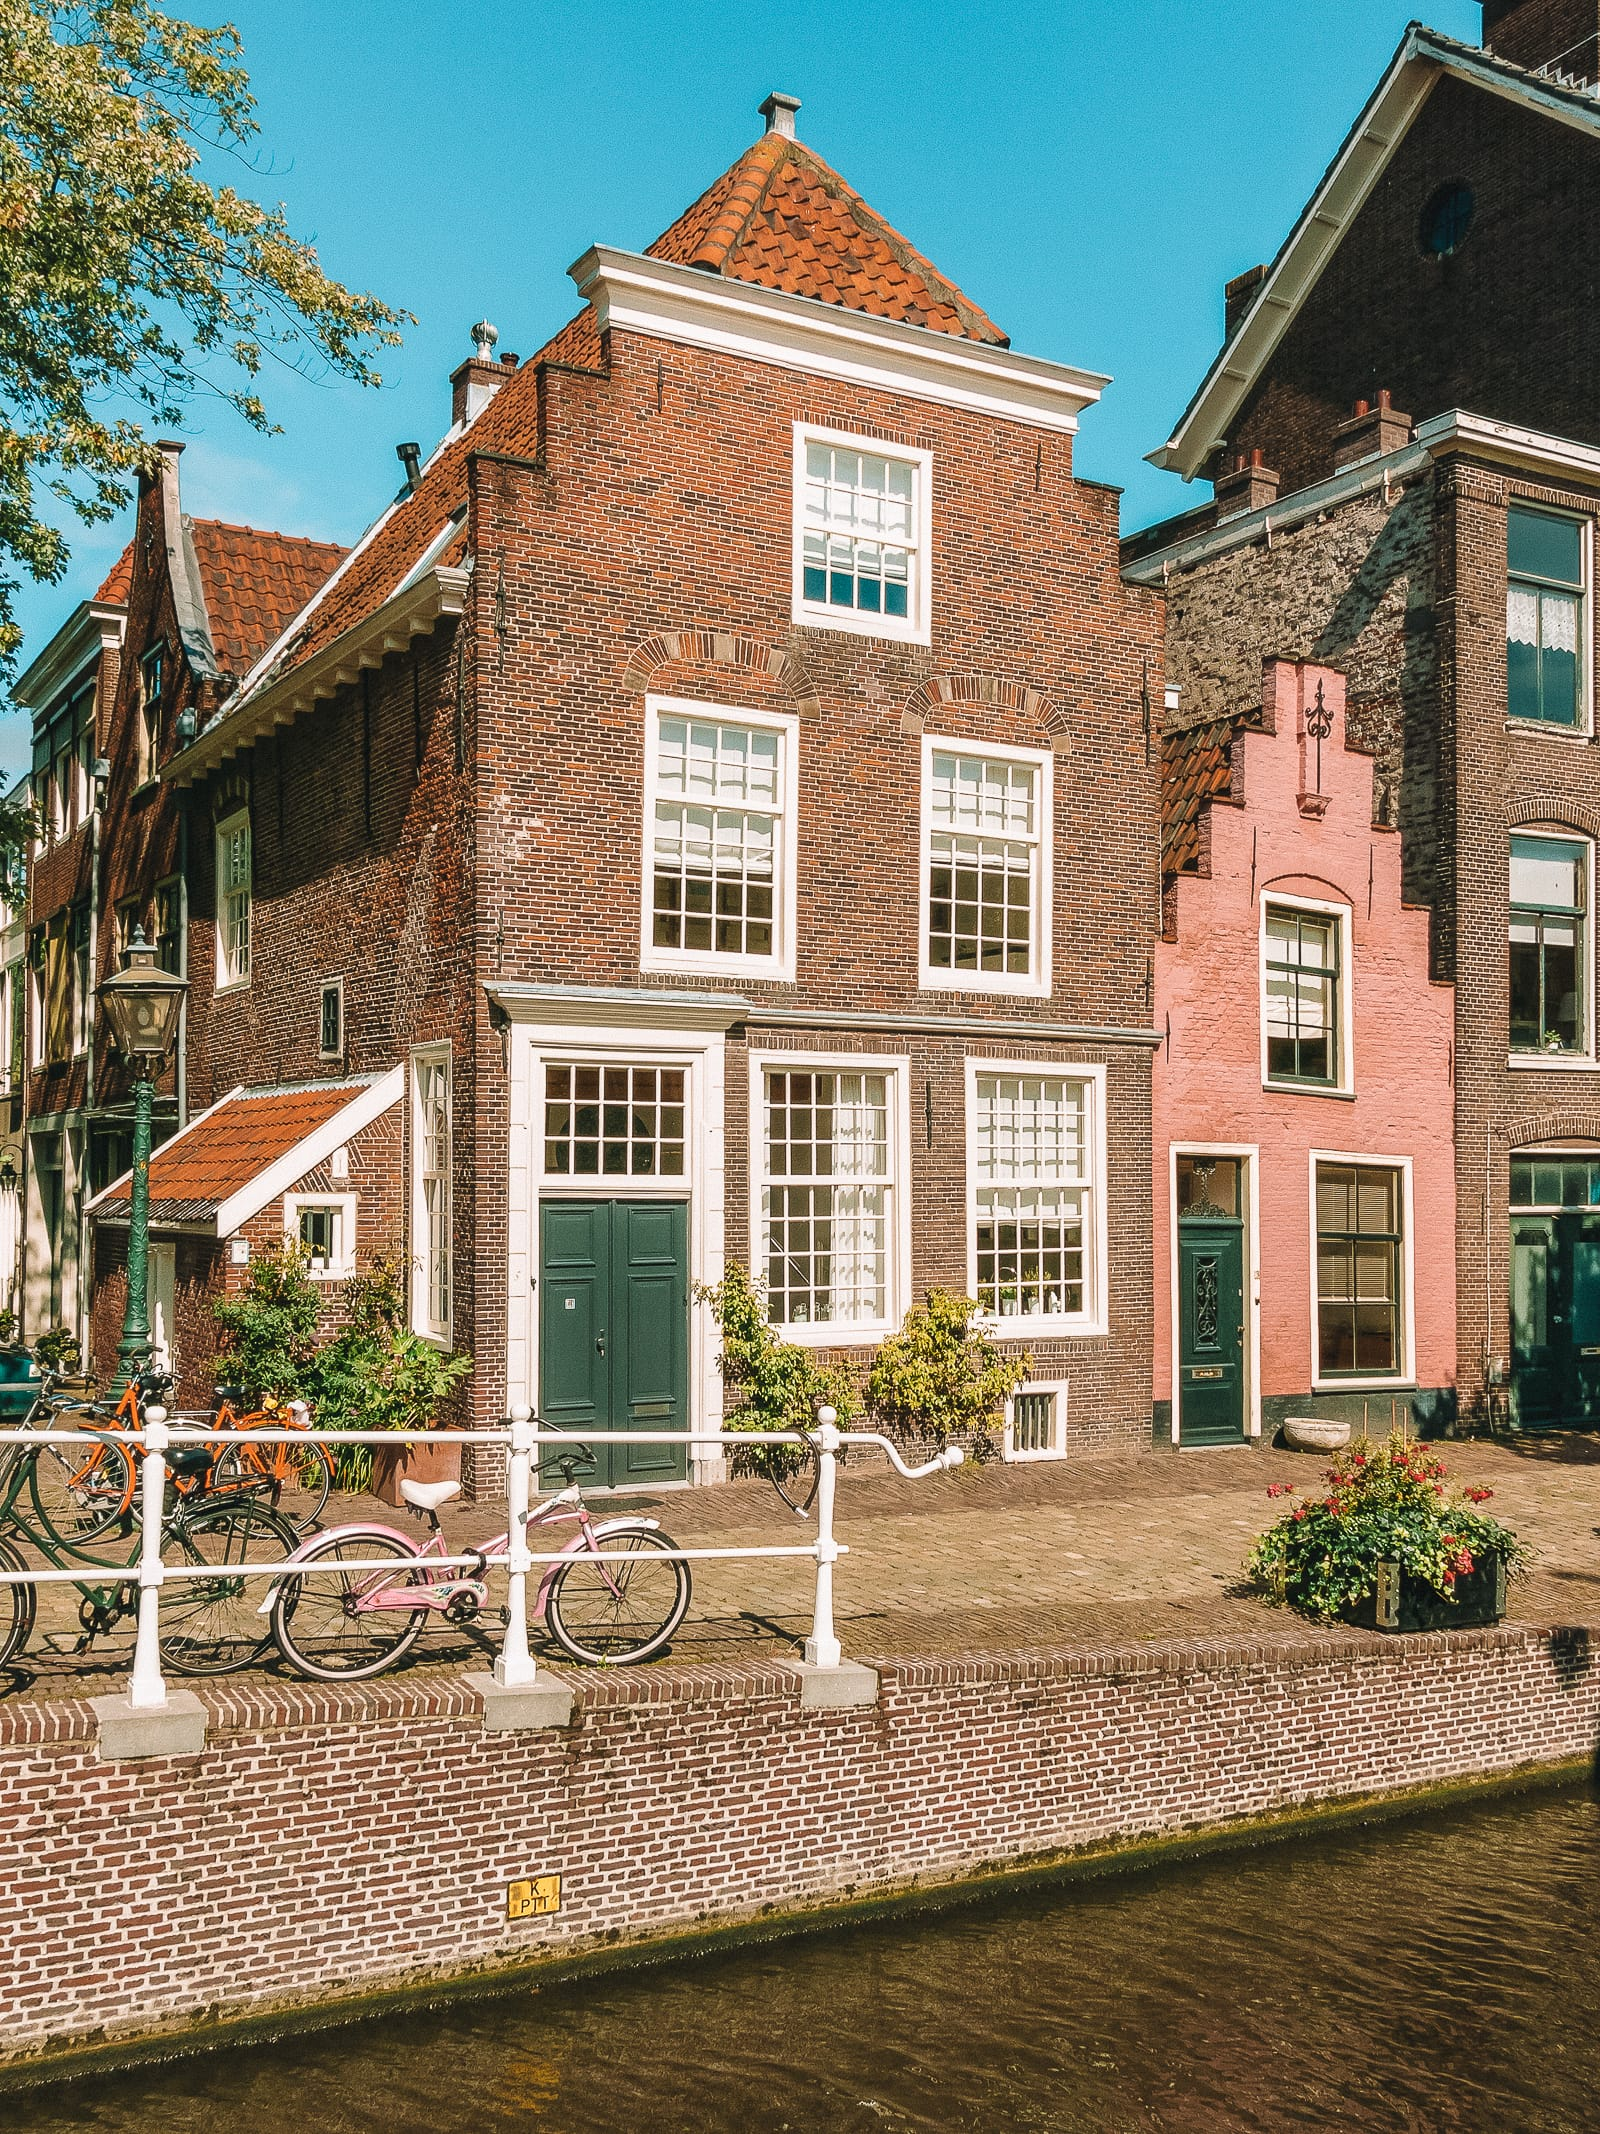 11 Best Places In The Netherlands To Visit (12)